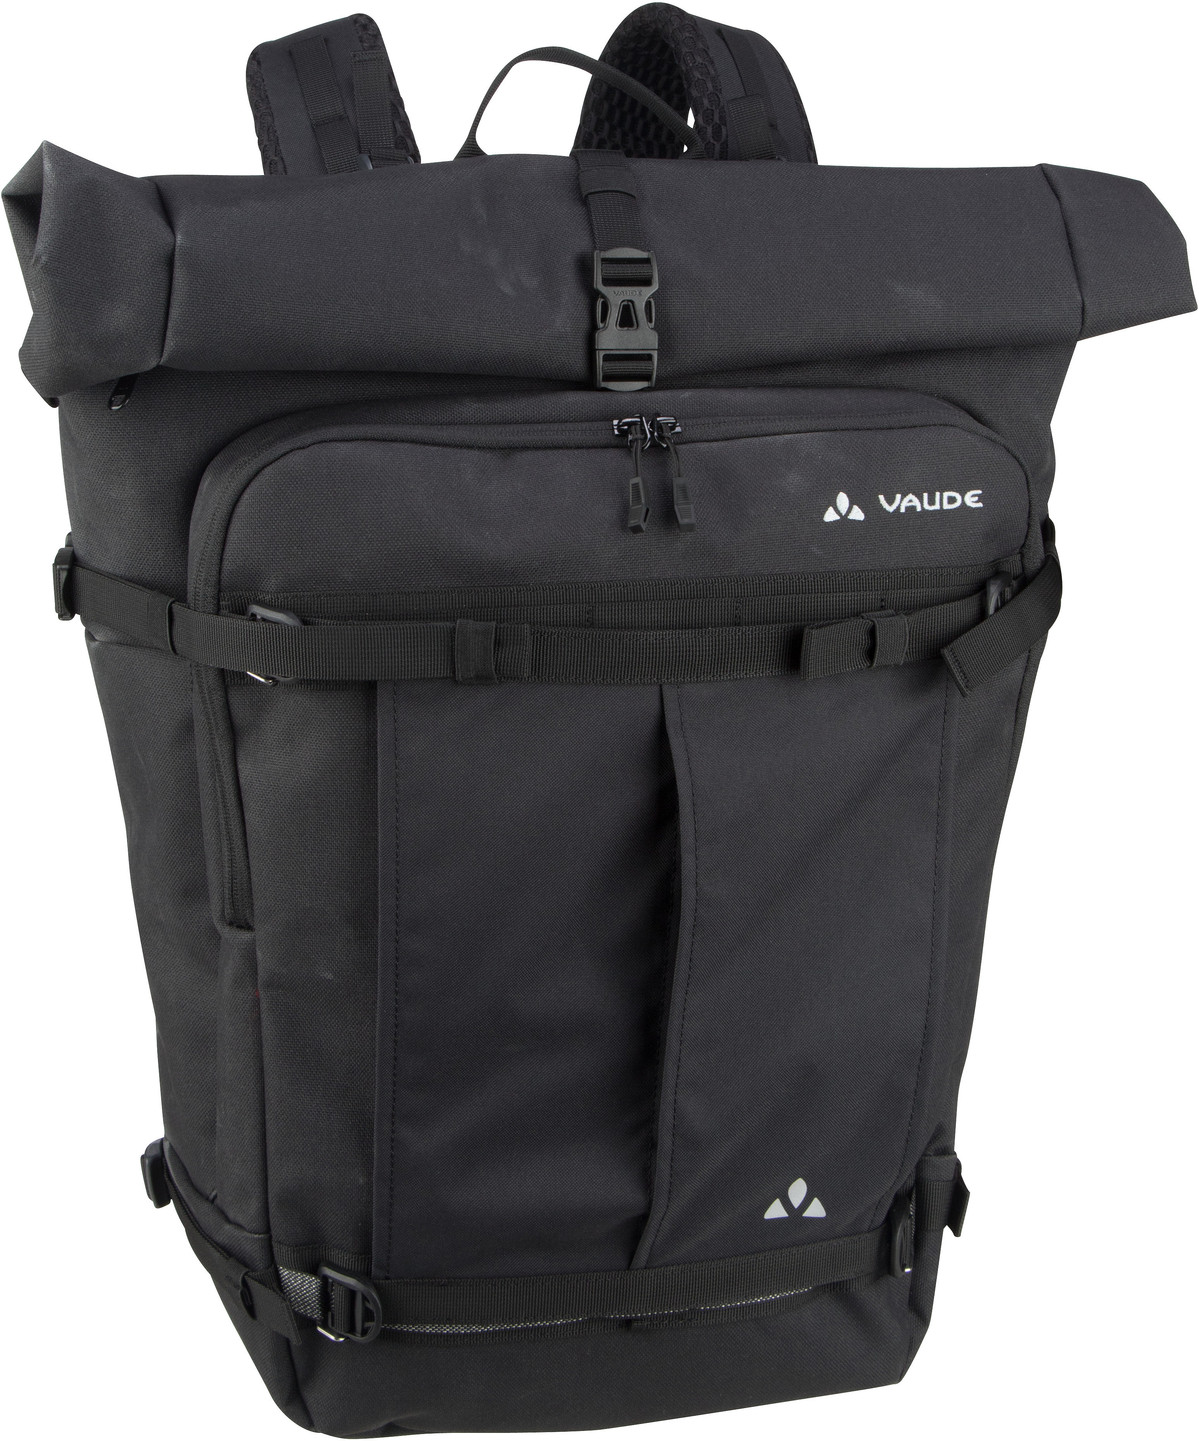 Rucksack / Daypack ExCycling Pack Black (30 Liter)